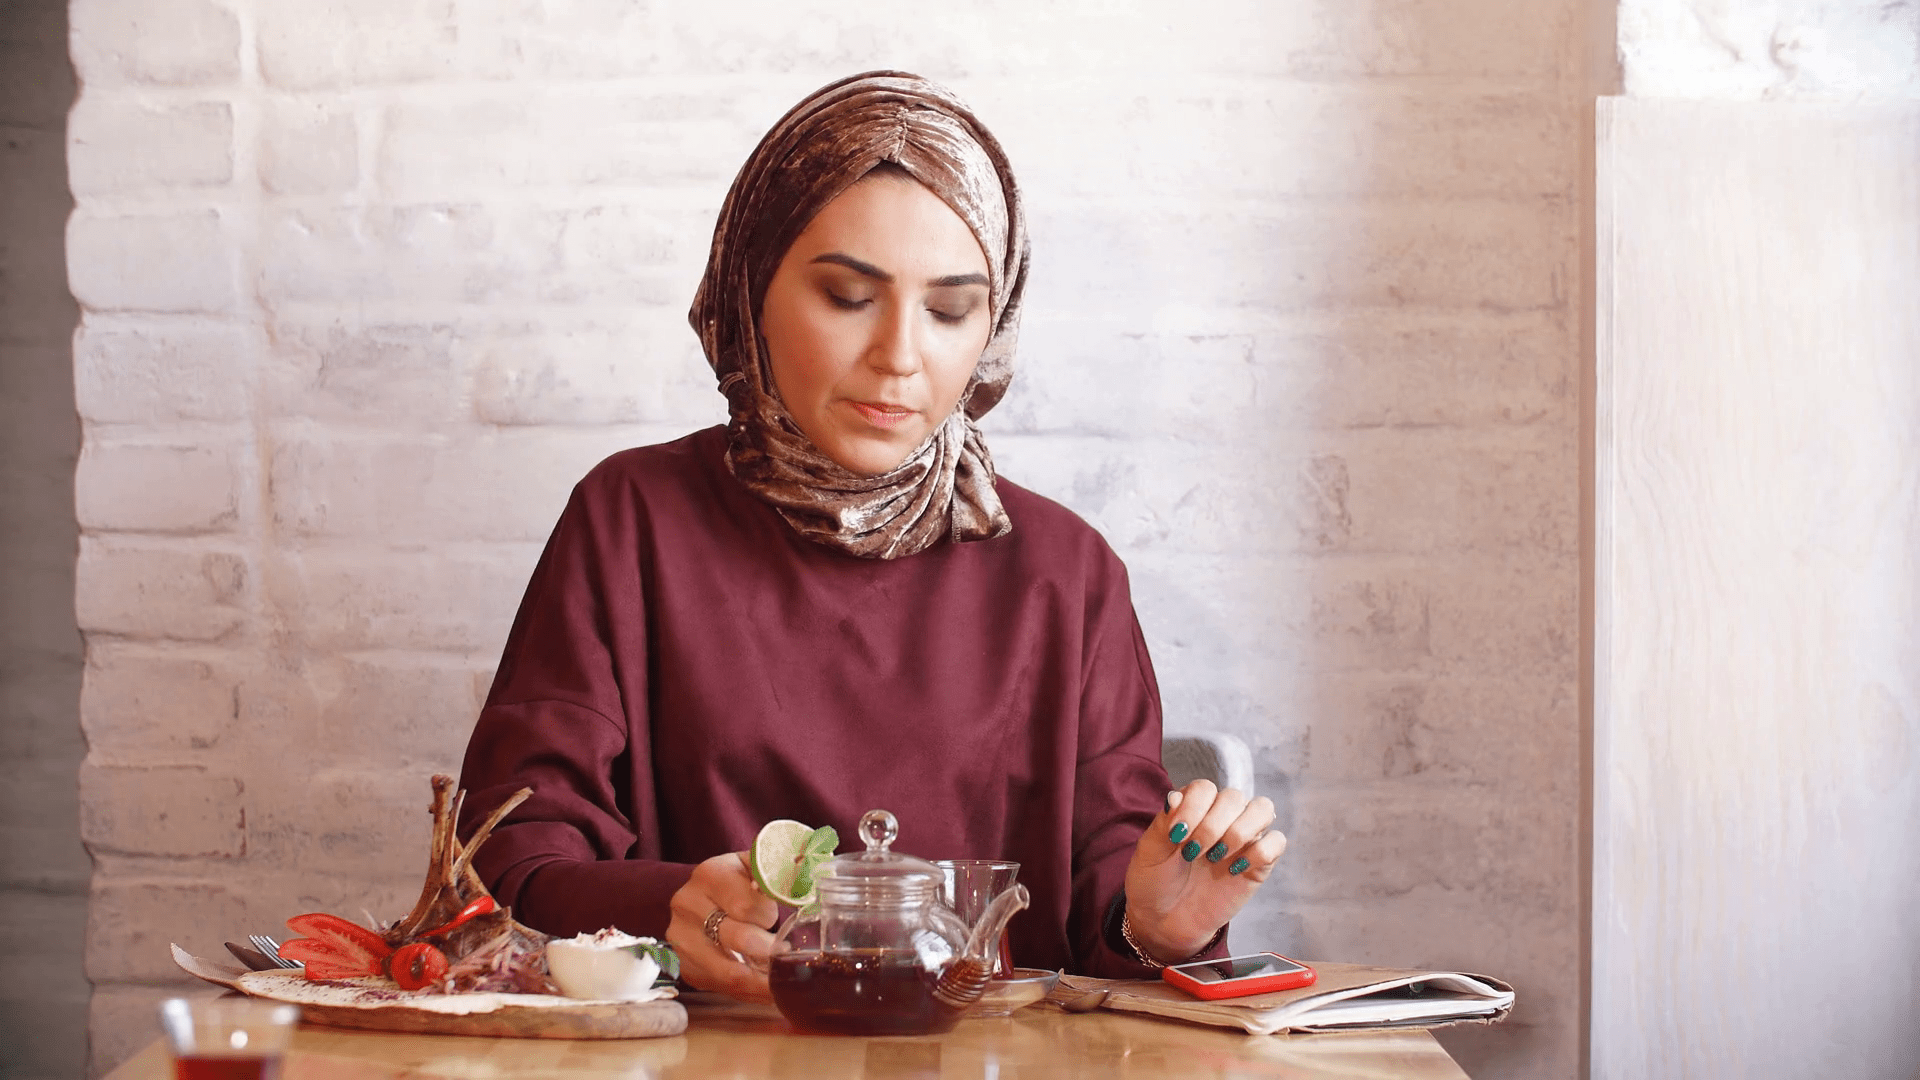 Does the Dietary Law in Islam Cause Hesitation for Non-Muslims to Revert?